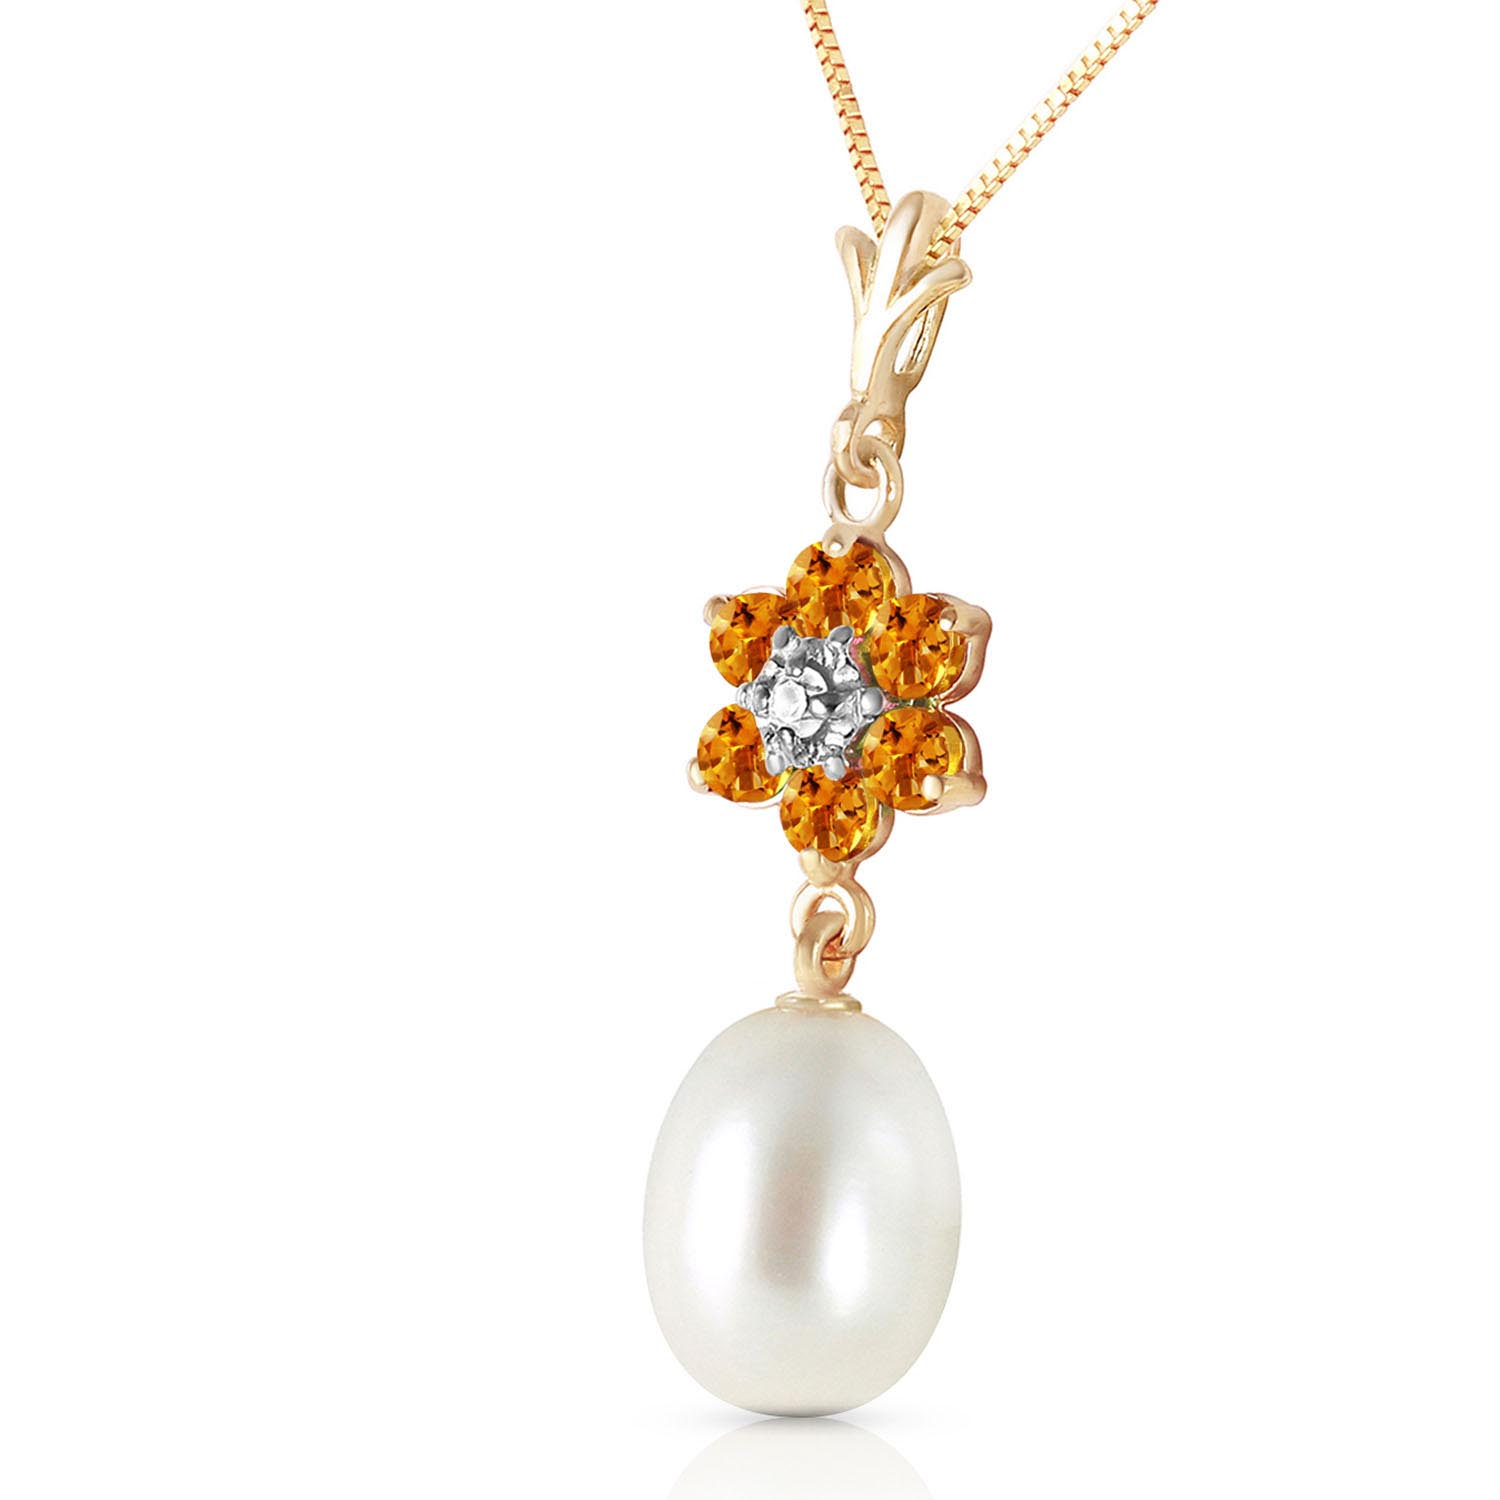 Pearl, Citrine and Diamond Daisy Pendant Necklace 4.5ctw in 9ct Gold